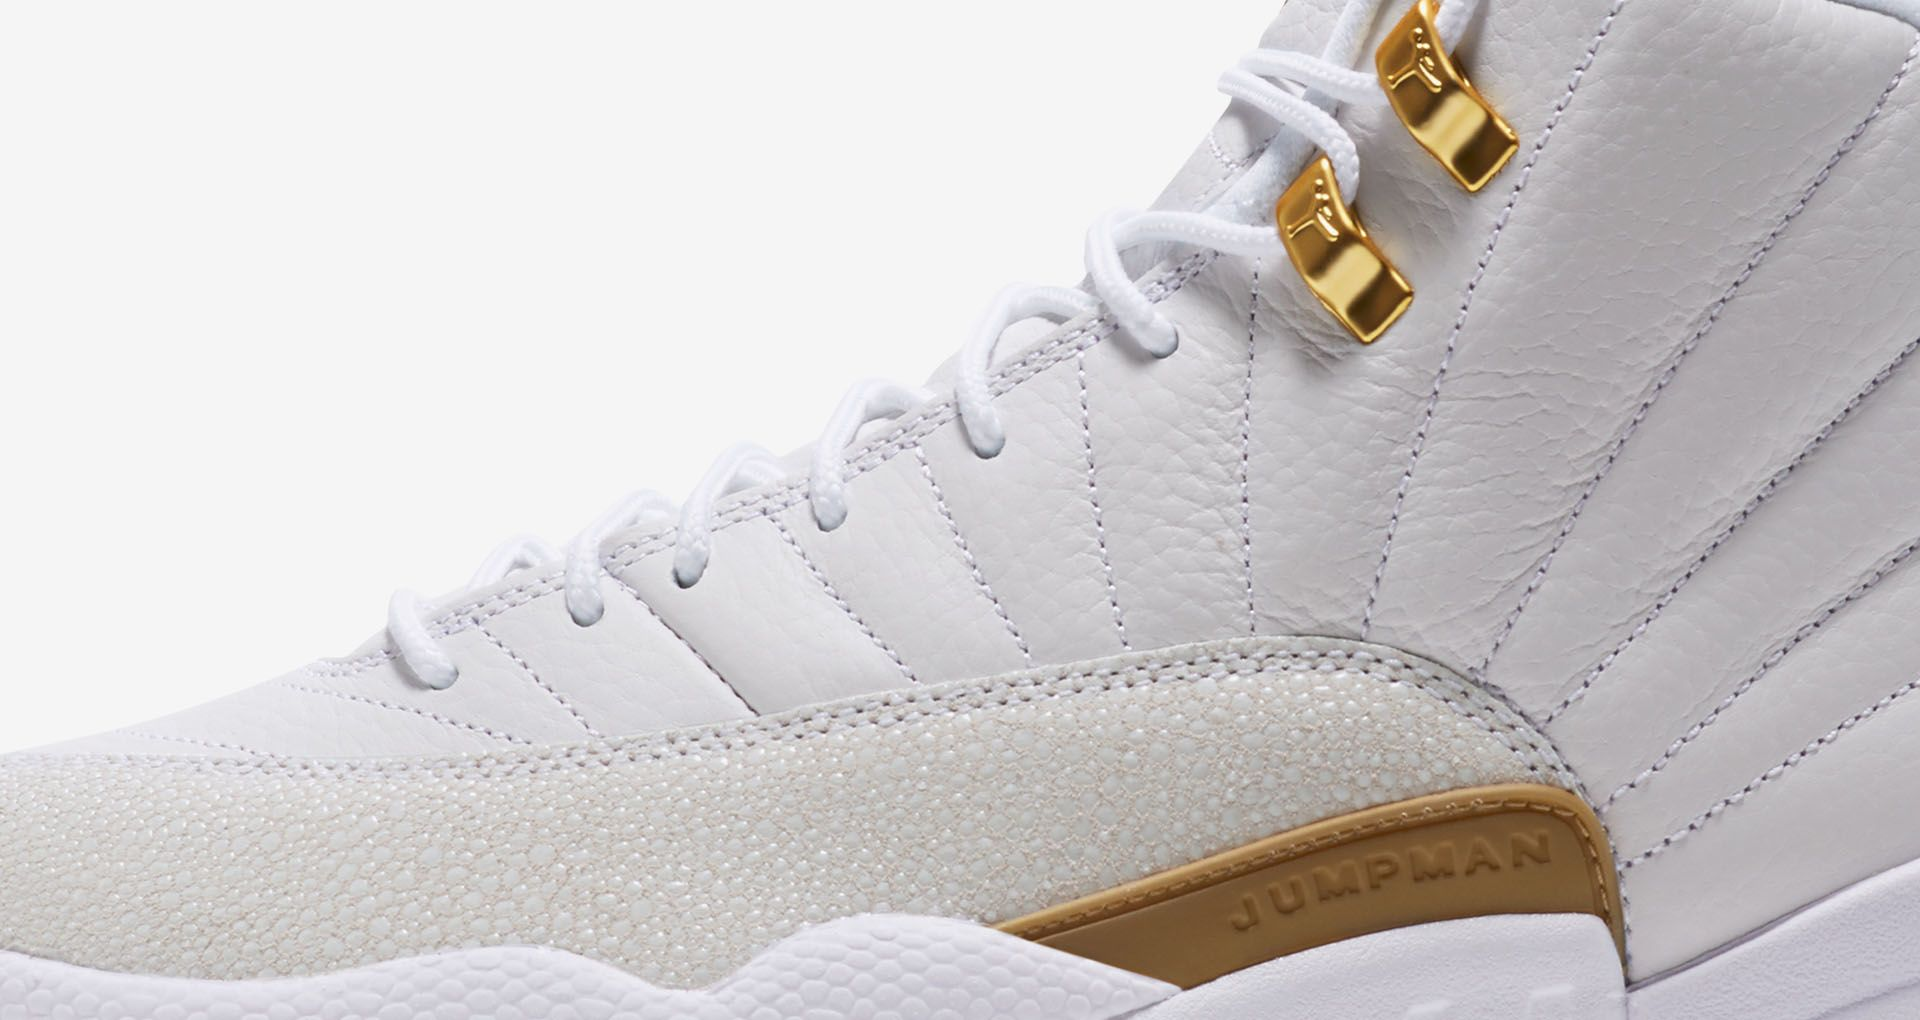 lowest price a5acd 7afab Air Jordan 12 OVO 'White & Metallic Gold' Release Date. Nike ...